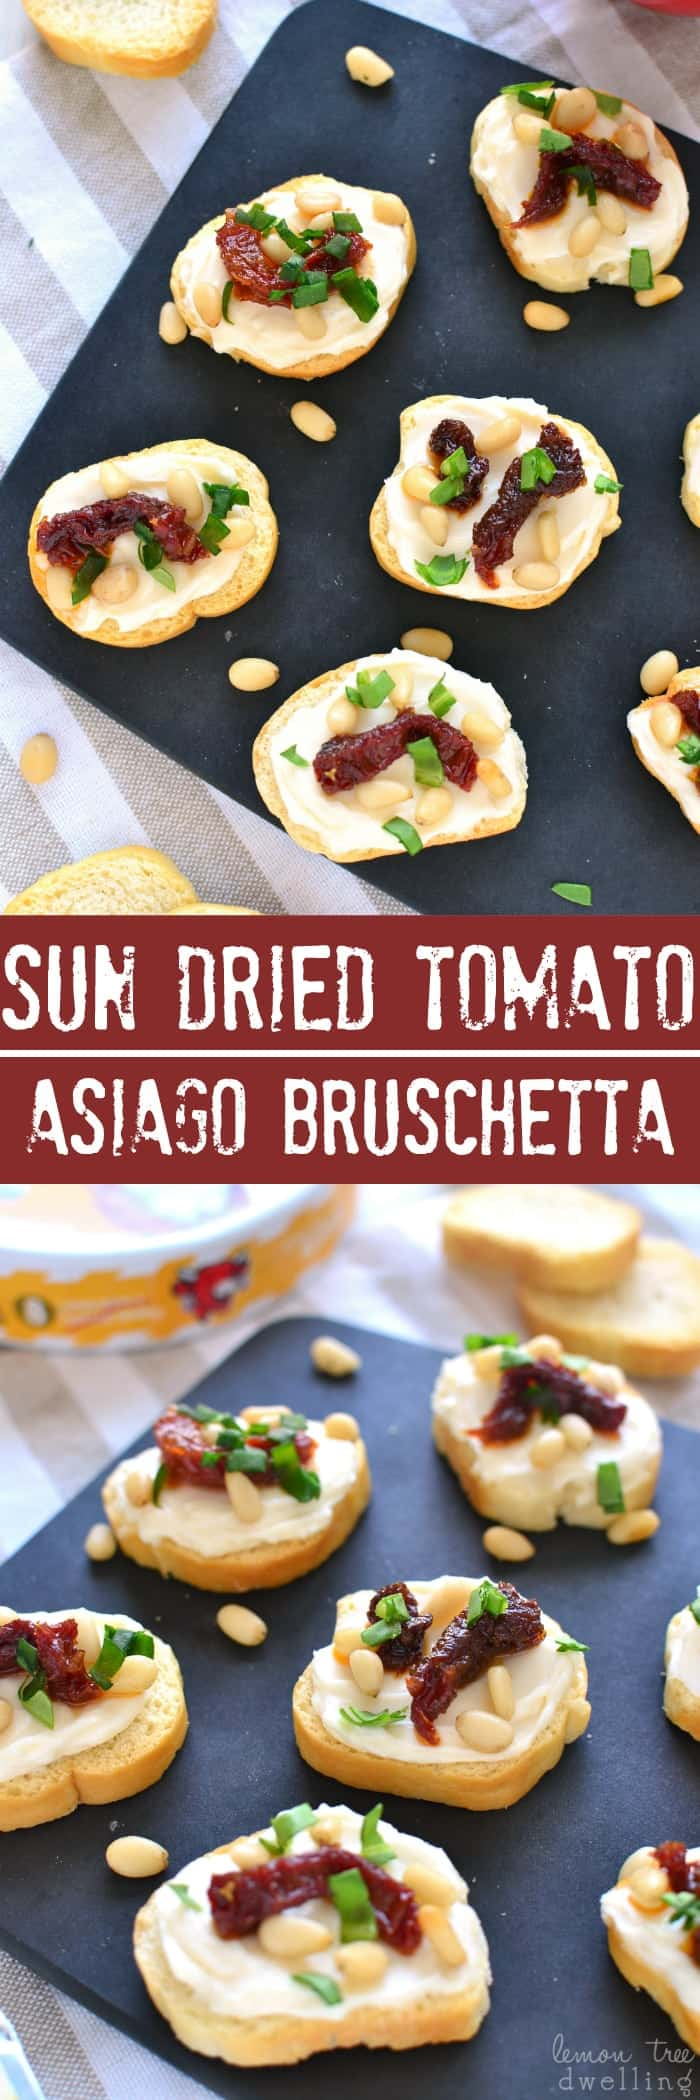 Sun Dried Tomato Asiago Bruschetta is made with just 5 simple ingredients and packed with delicious flavor! Perfect for snacking, sharing, or serving at your next party!